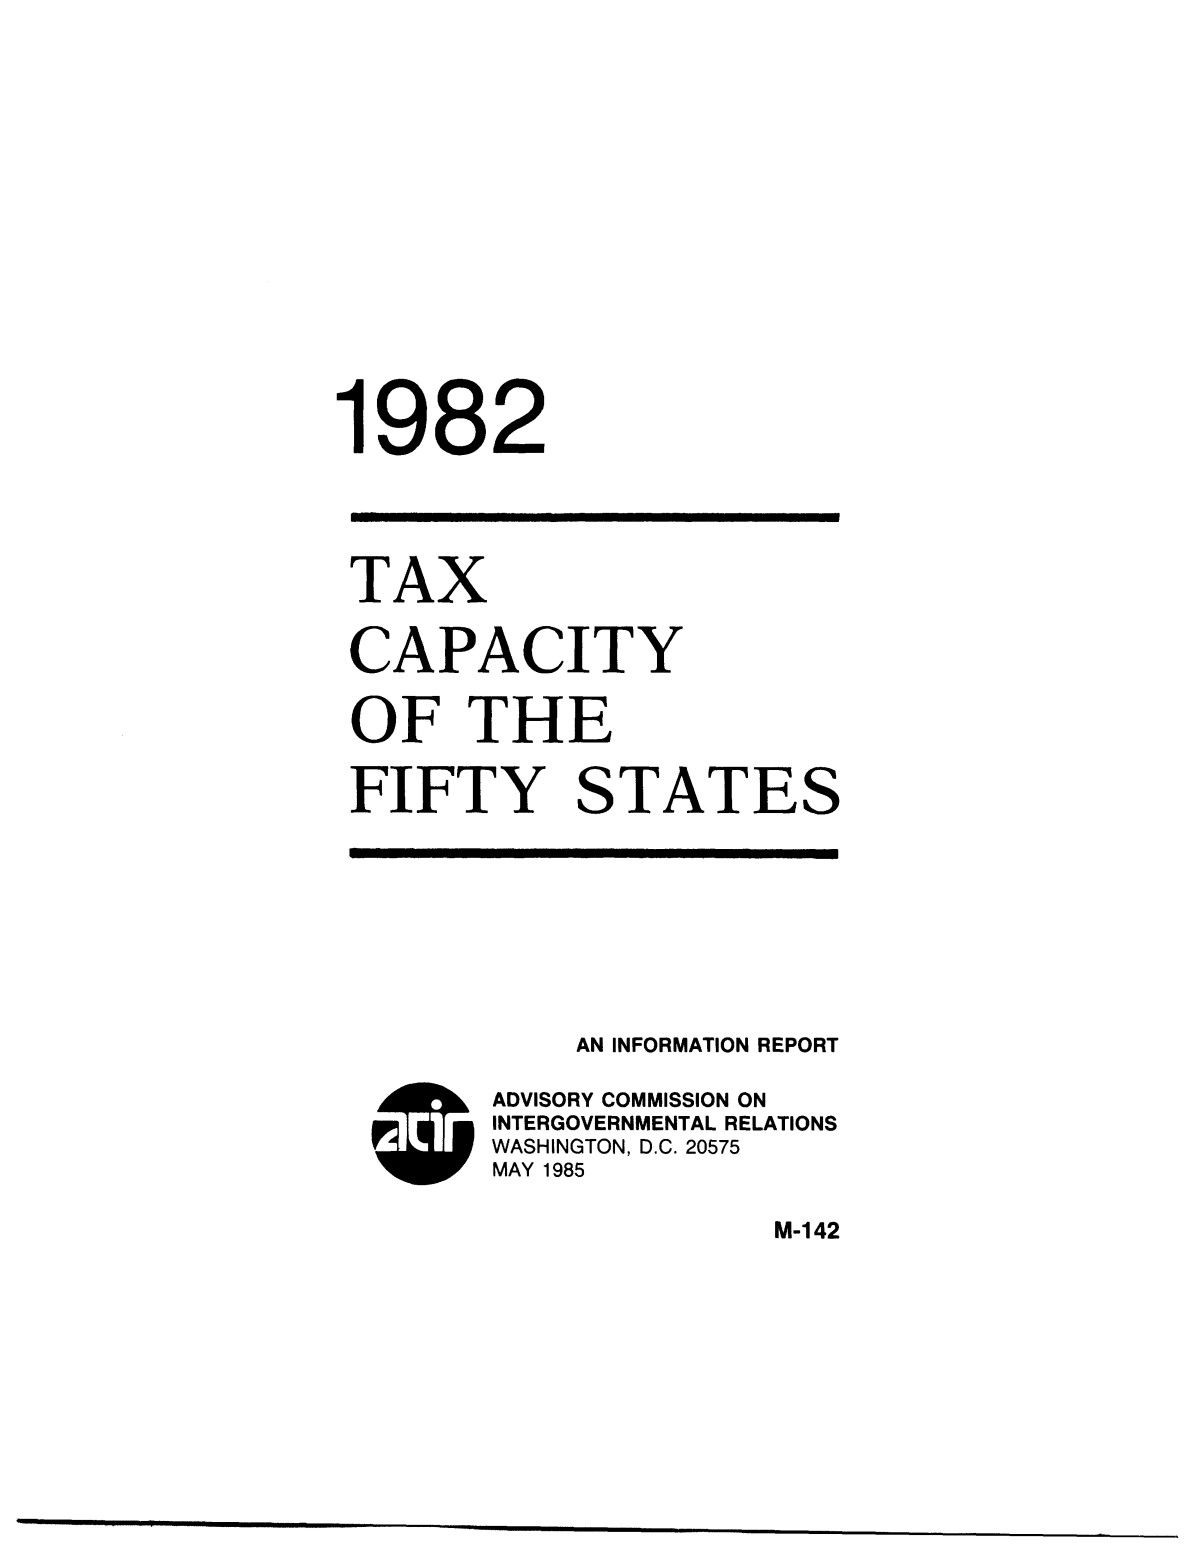 Tax Capacity of the Fifty States, 1982                                                                                                      I